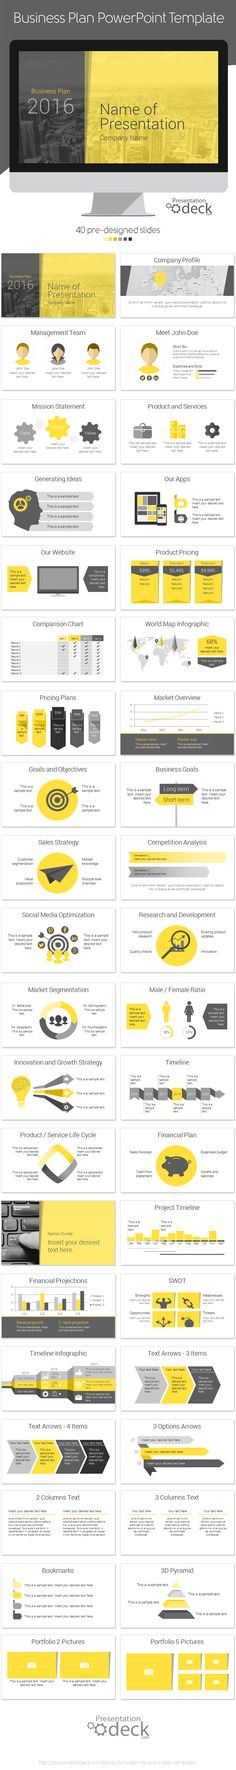 Modern business plan PowerPoint template containing 40 slides. #powerpoint #presentations